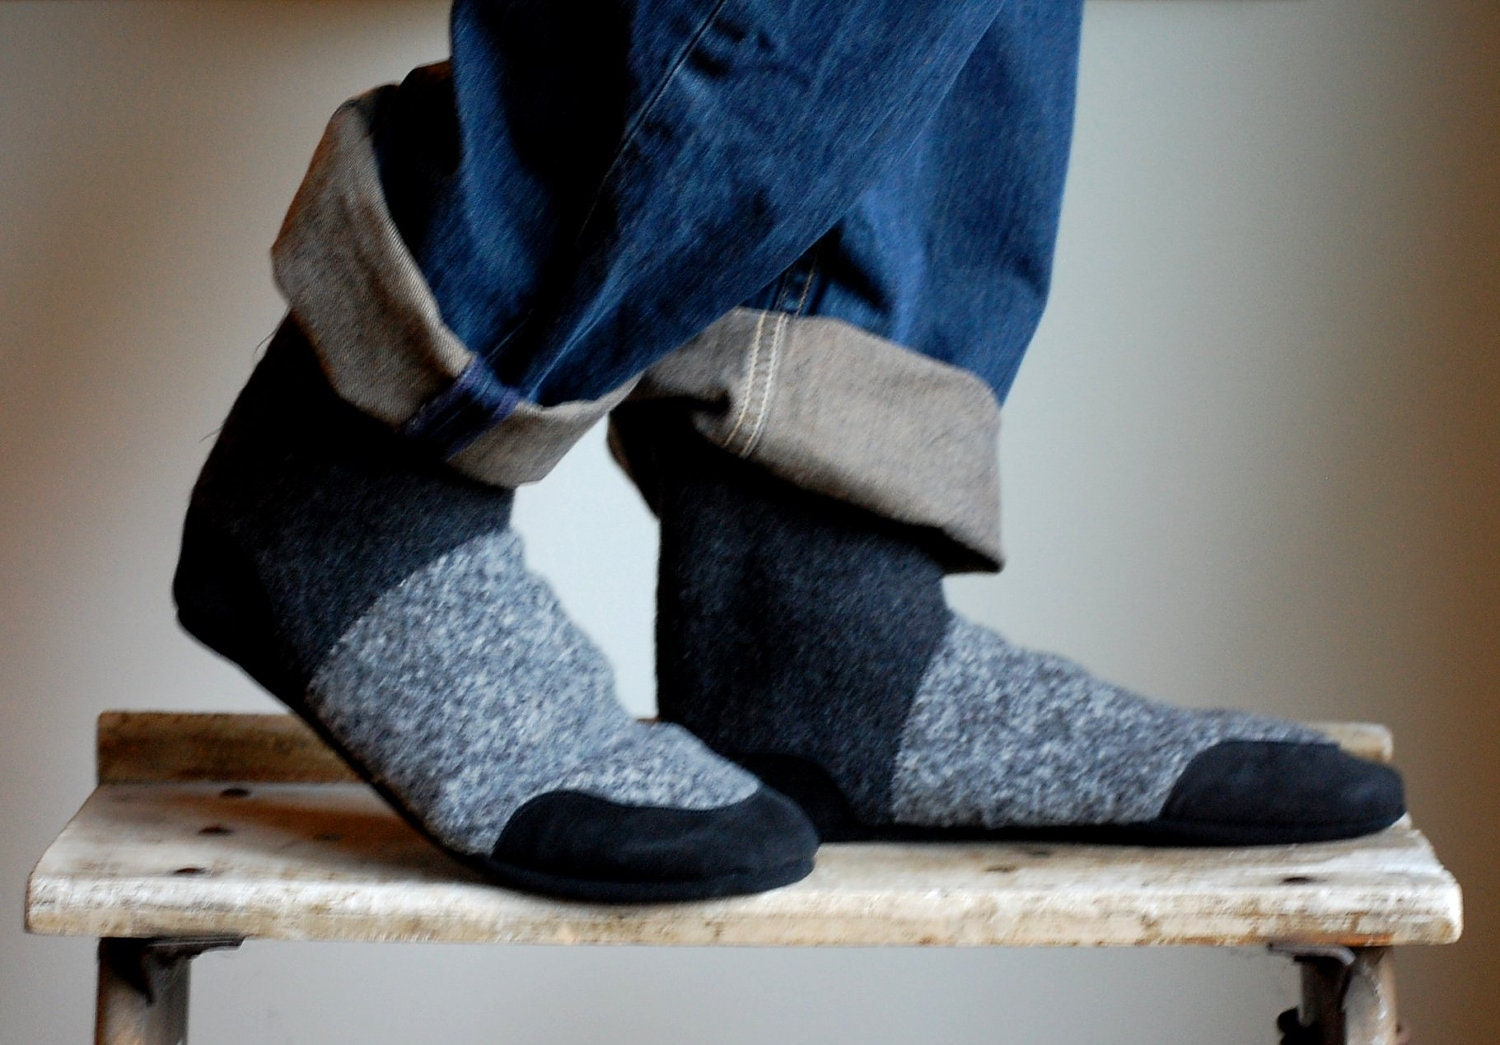 Dec 19,  · The Slipper Sock has a memory foam and featherweight EVA midsole that cushions your foot, and a leather sole and sidewall that protect the slipper from everyday wear and tear. Save your socks, and enjoy new-found comfort with the Acorn Slipper Sock/5(6).